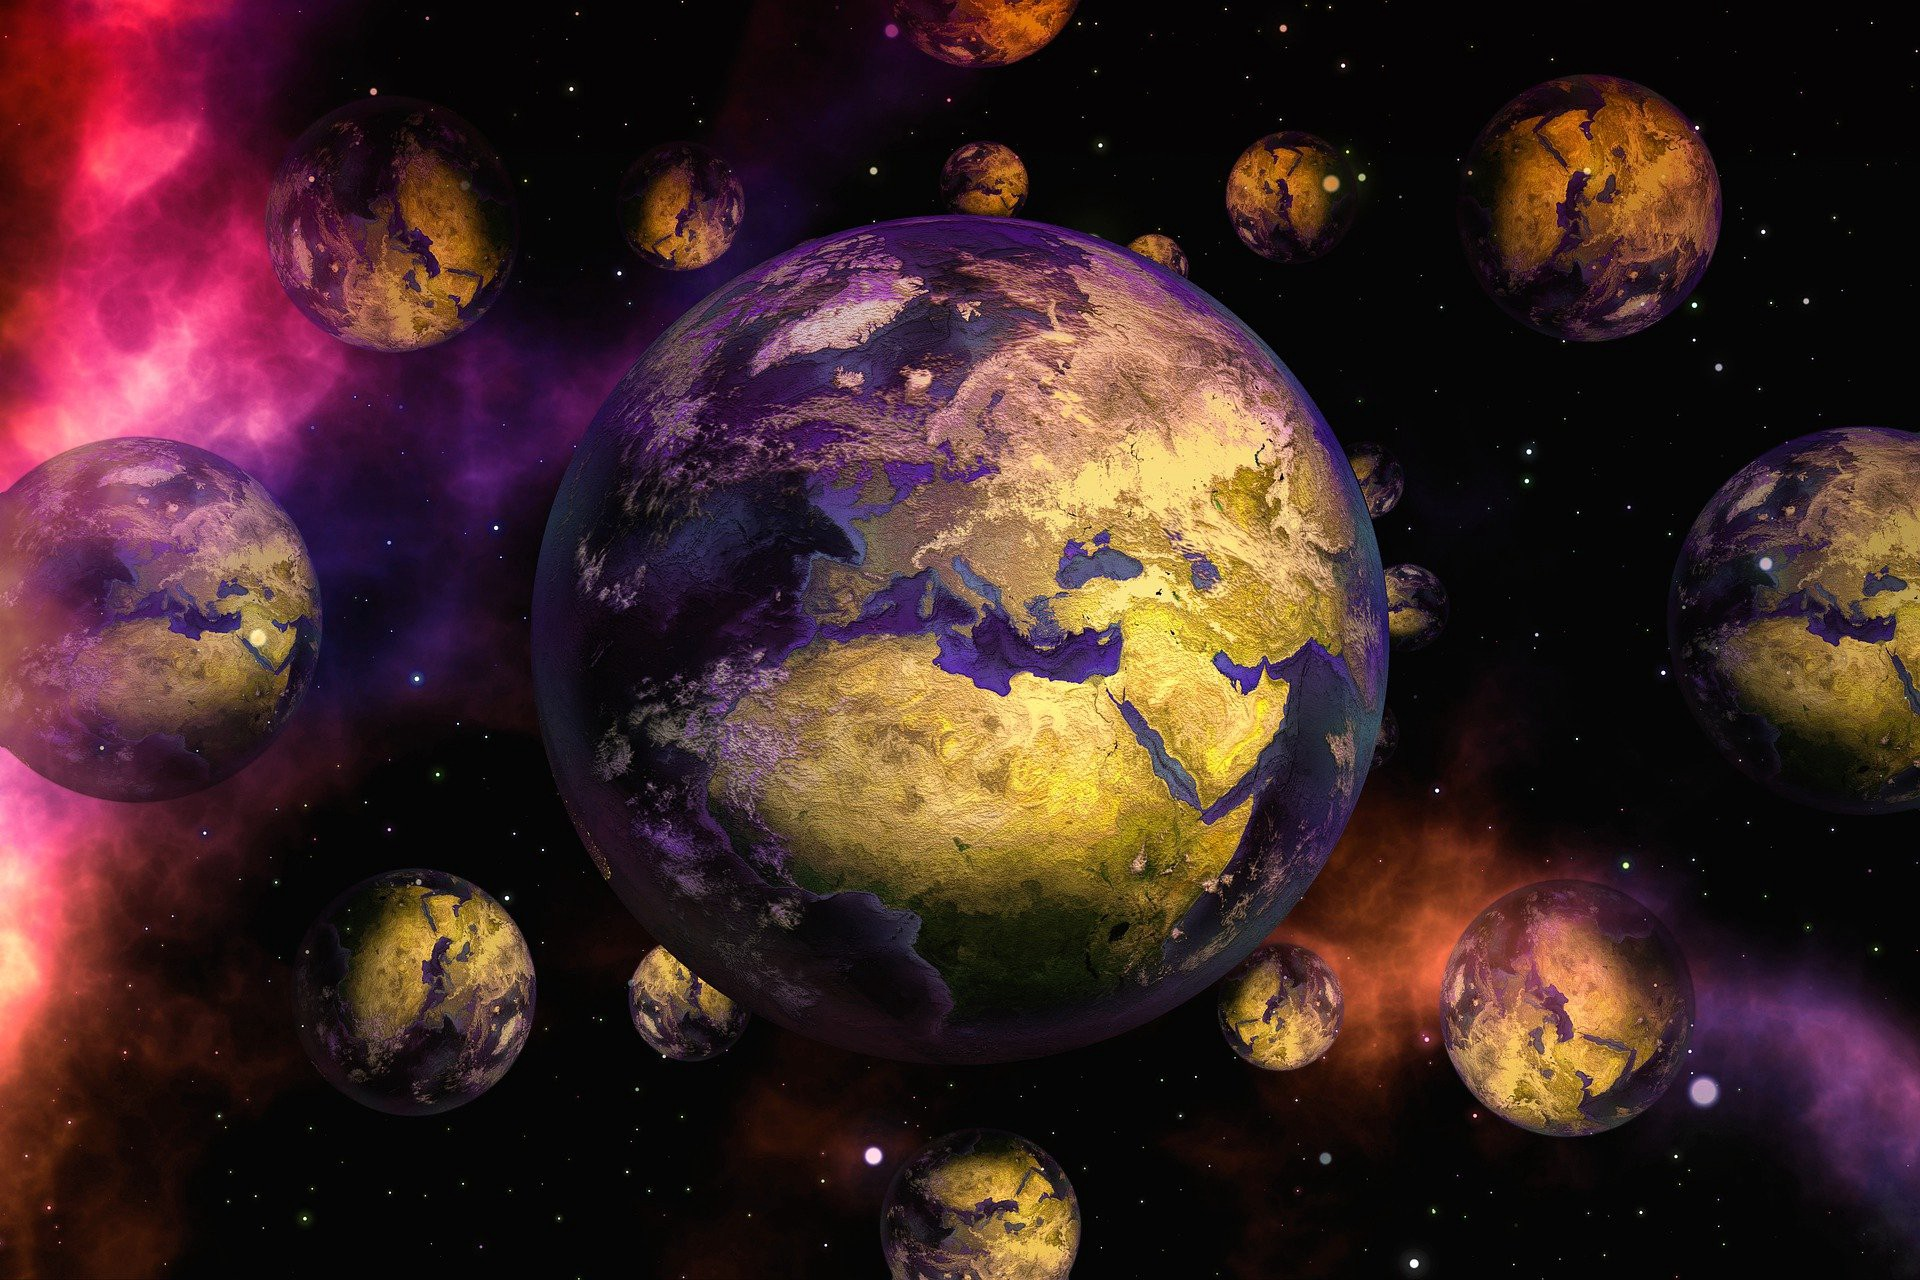 Picture of multiple planets next to each other in a fantastical way.